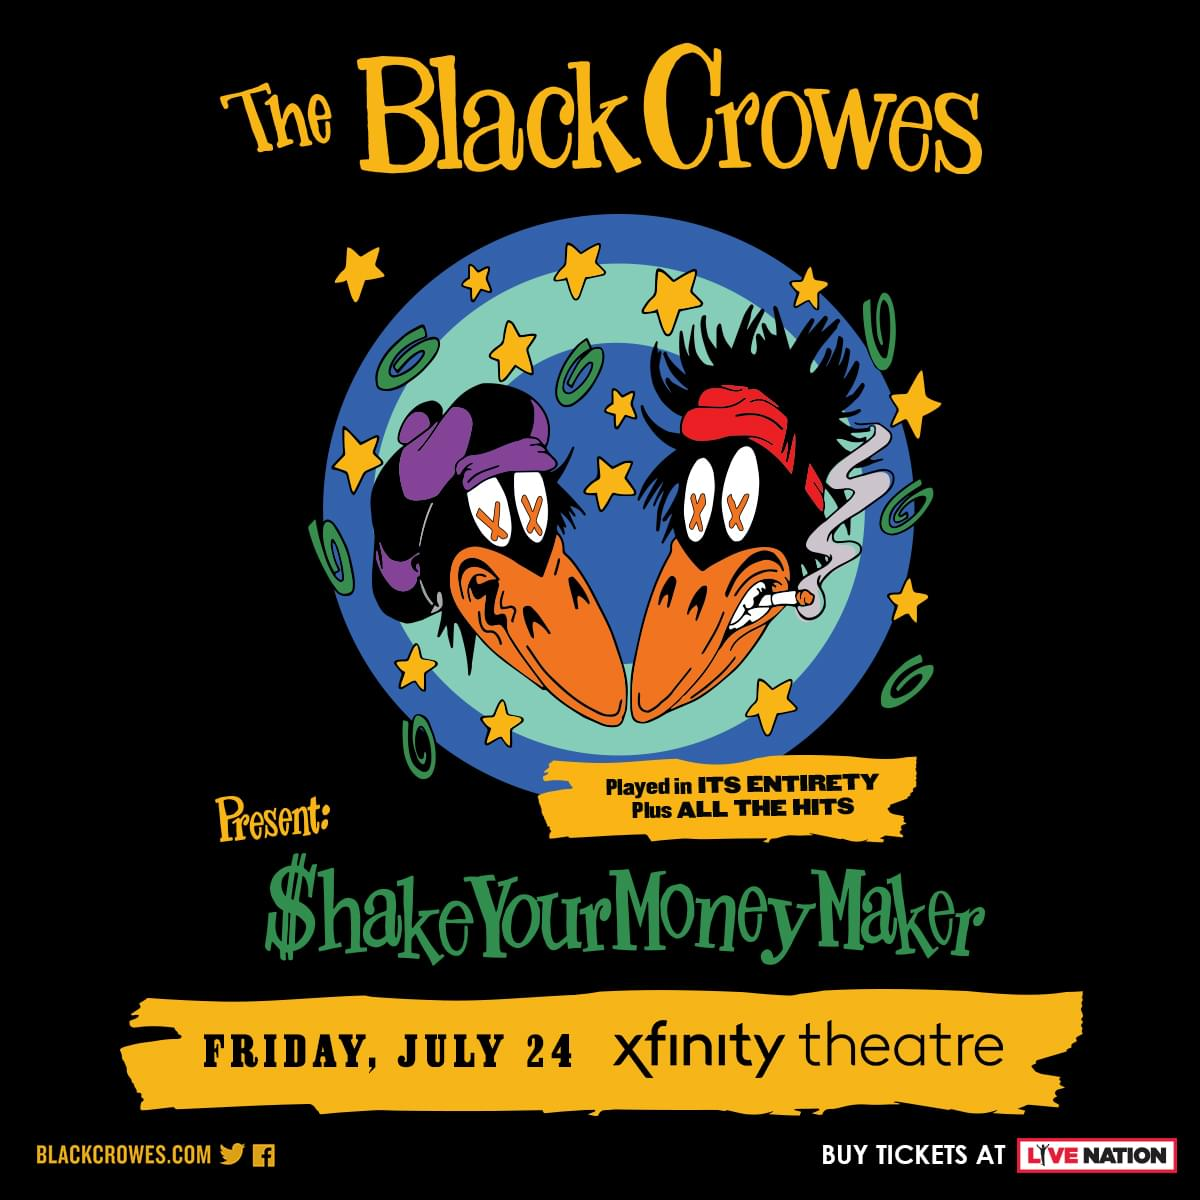 Win tickets to The Black Crowes